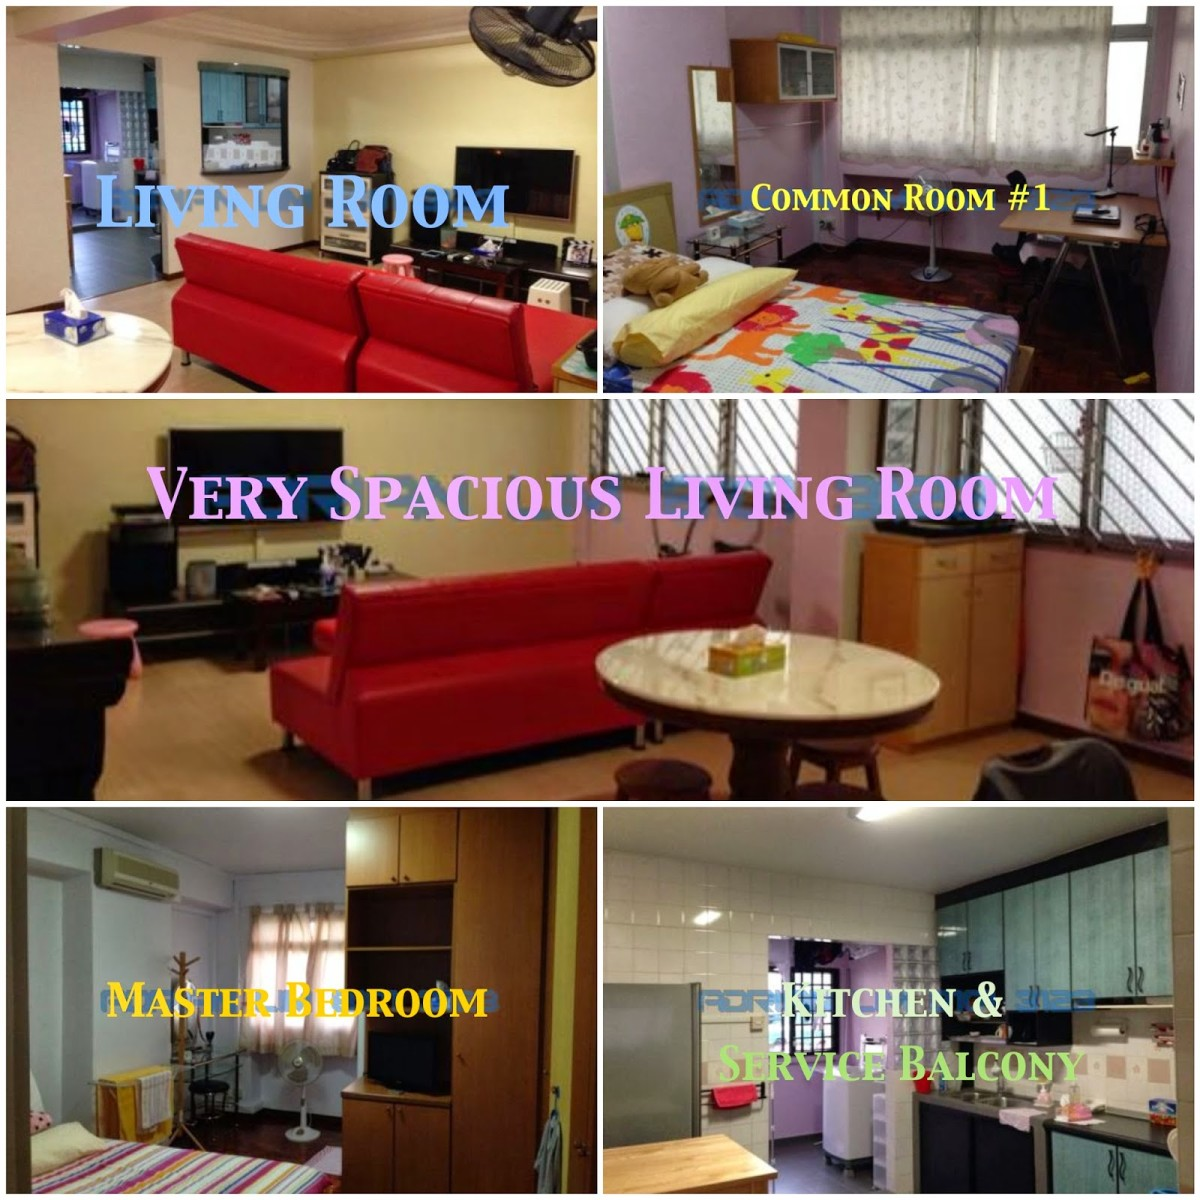 Home Design Ideas For Hdb Flats: Revised 4-Room HDB Renovation Ideas